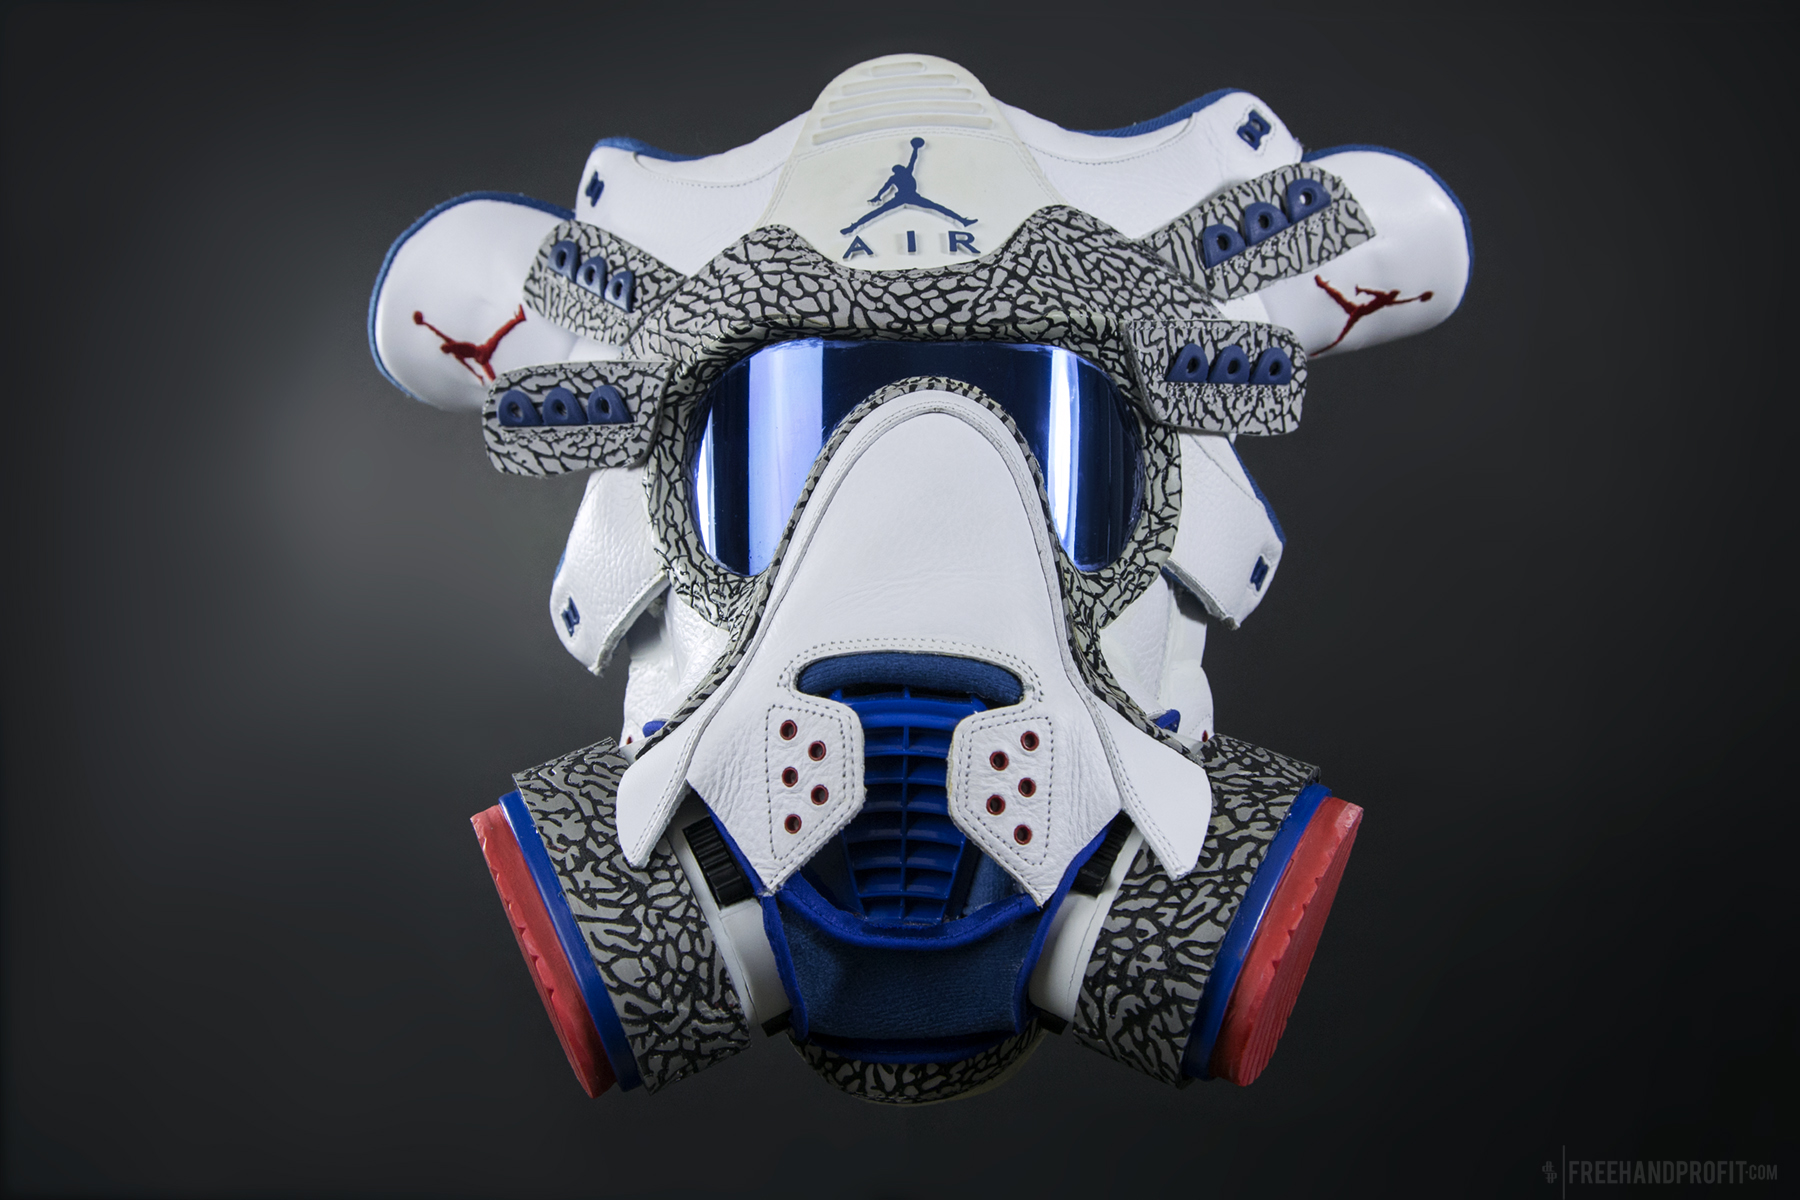 The 95th sneaker mask created by Freehand Profit. Made from 1 pair of size  17 e4911b4b0